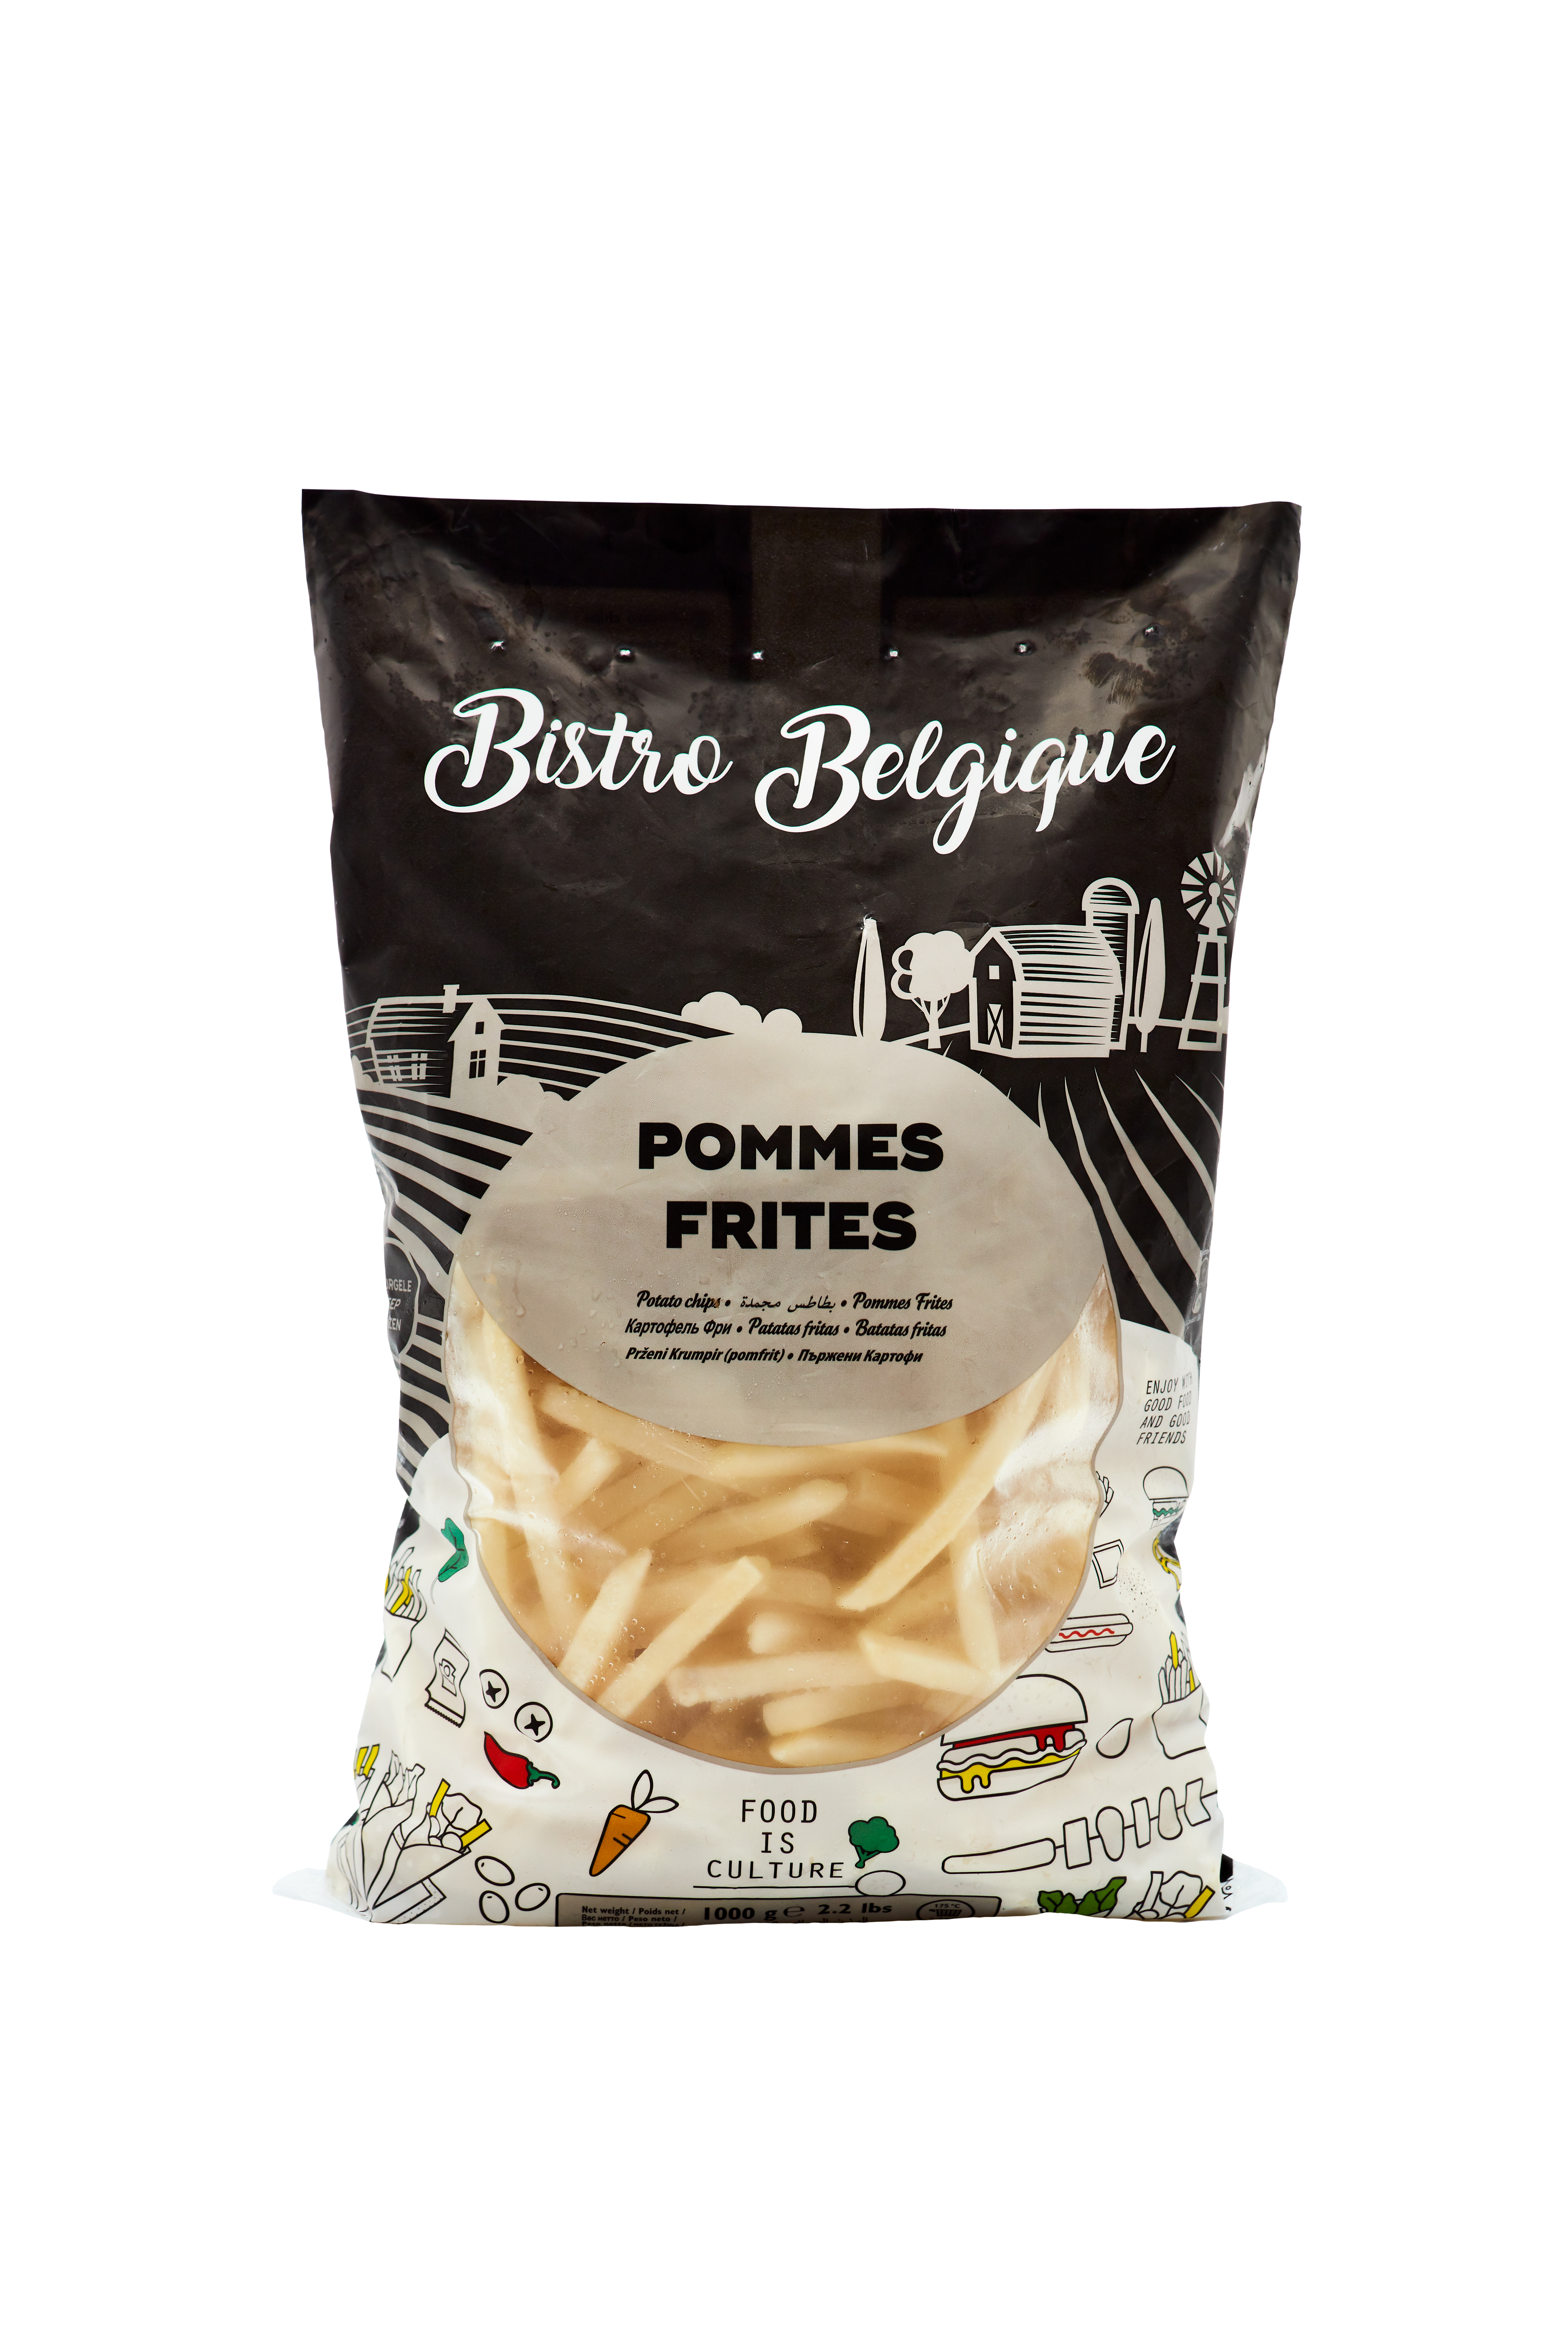 French fries 7x7mm packaging Bistro Belgique brand